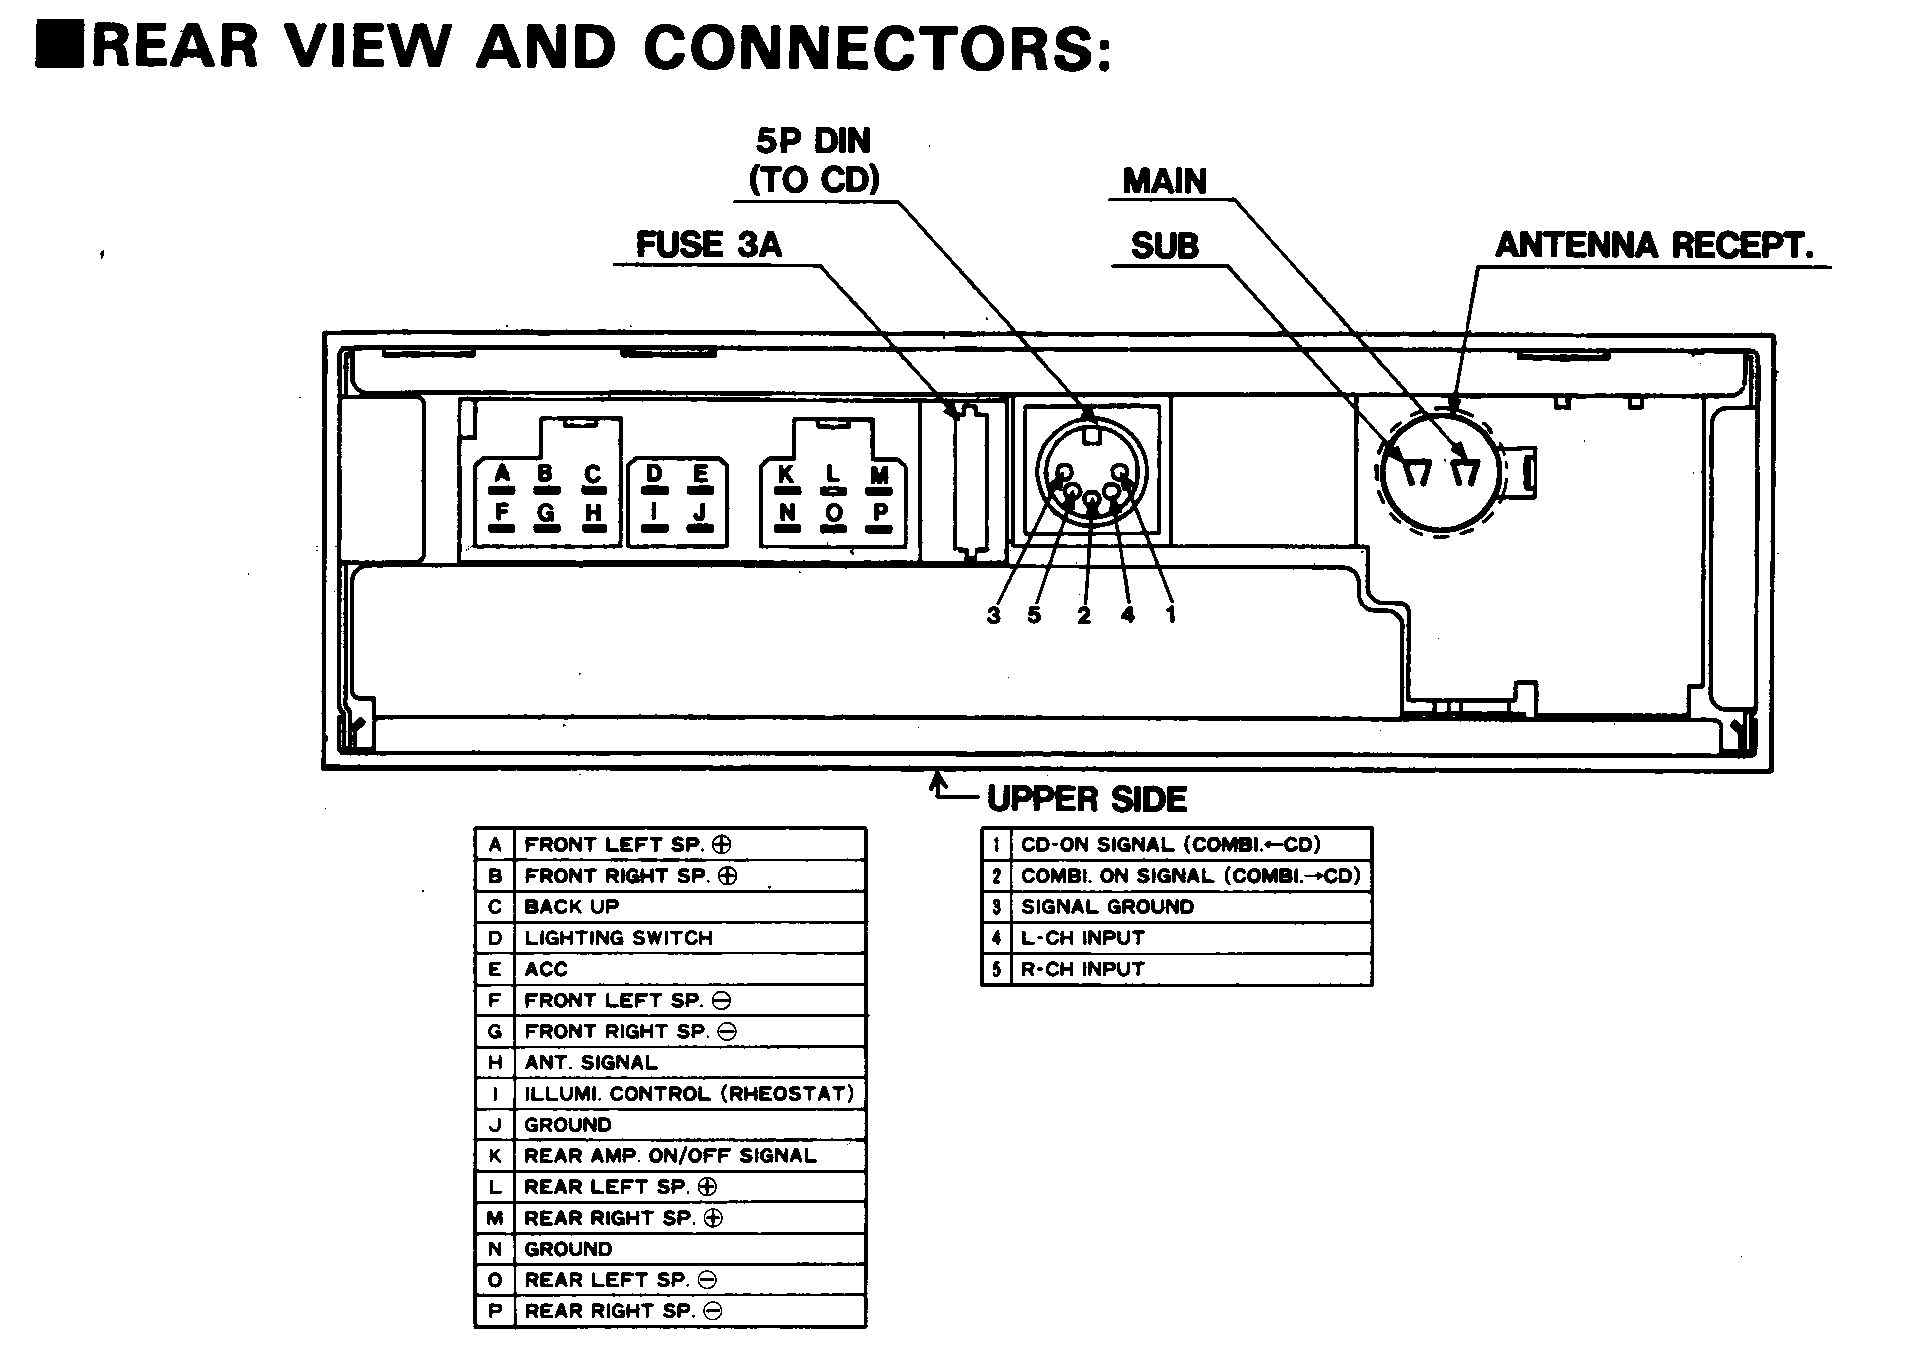 nissan altima radio wiring diagram three phase converter index of postpic 2015 07 car stereo audio autoradio connector wire installation schematic ...